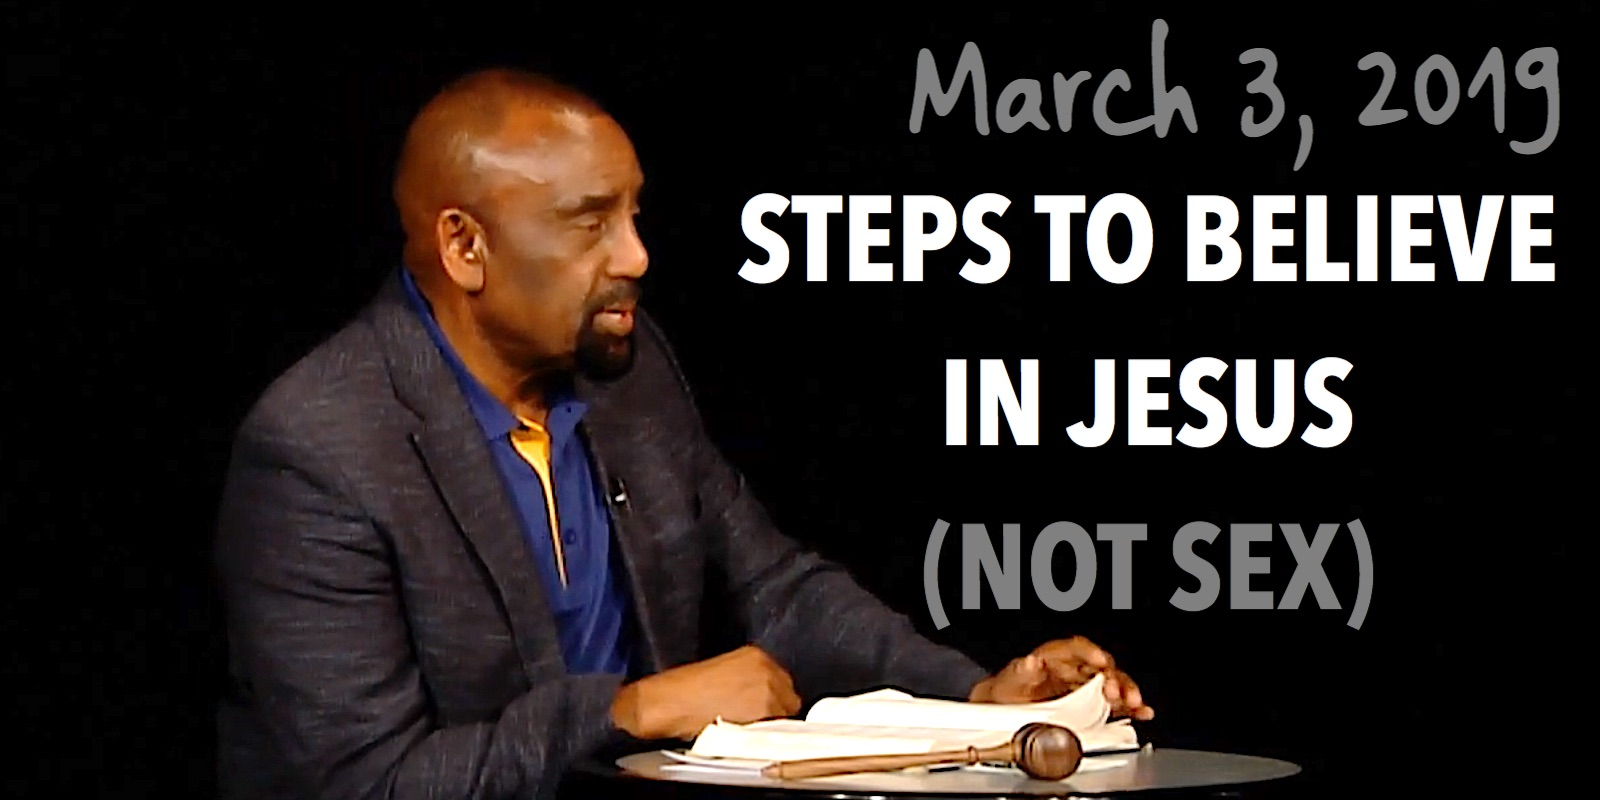 Church March 3, 2019: Steps to Believe in Jesus (Not Sex)